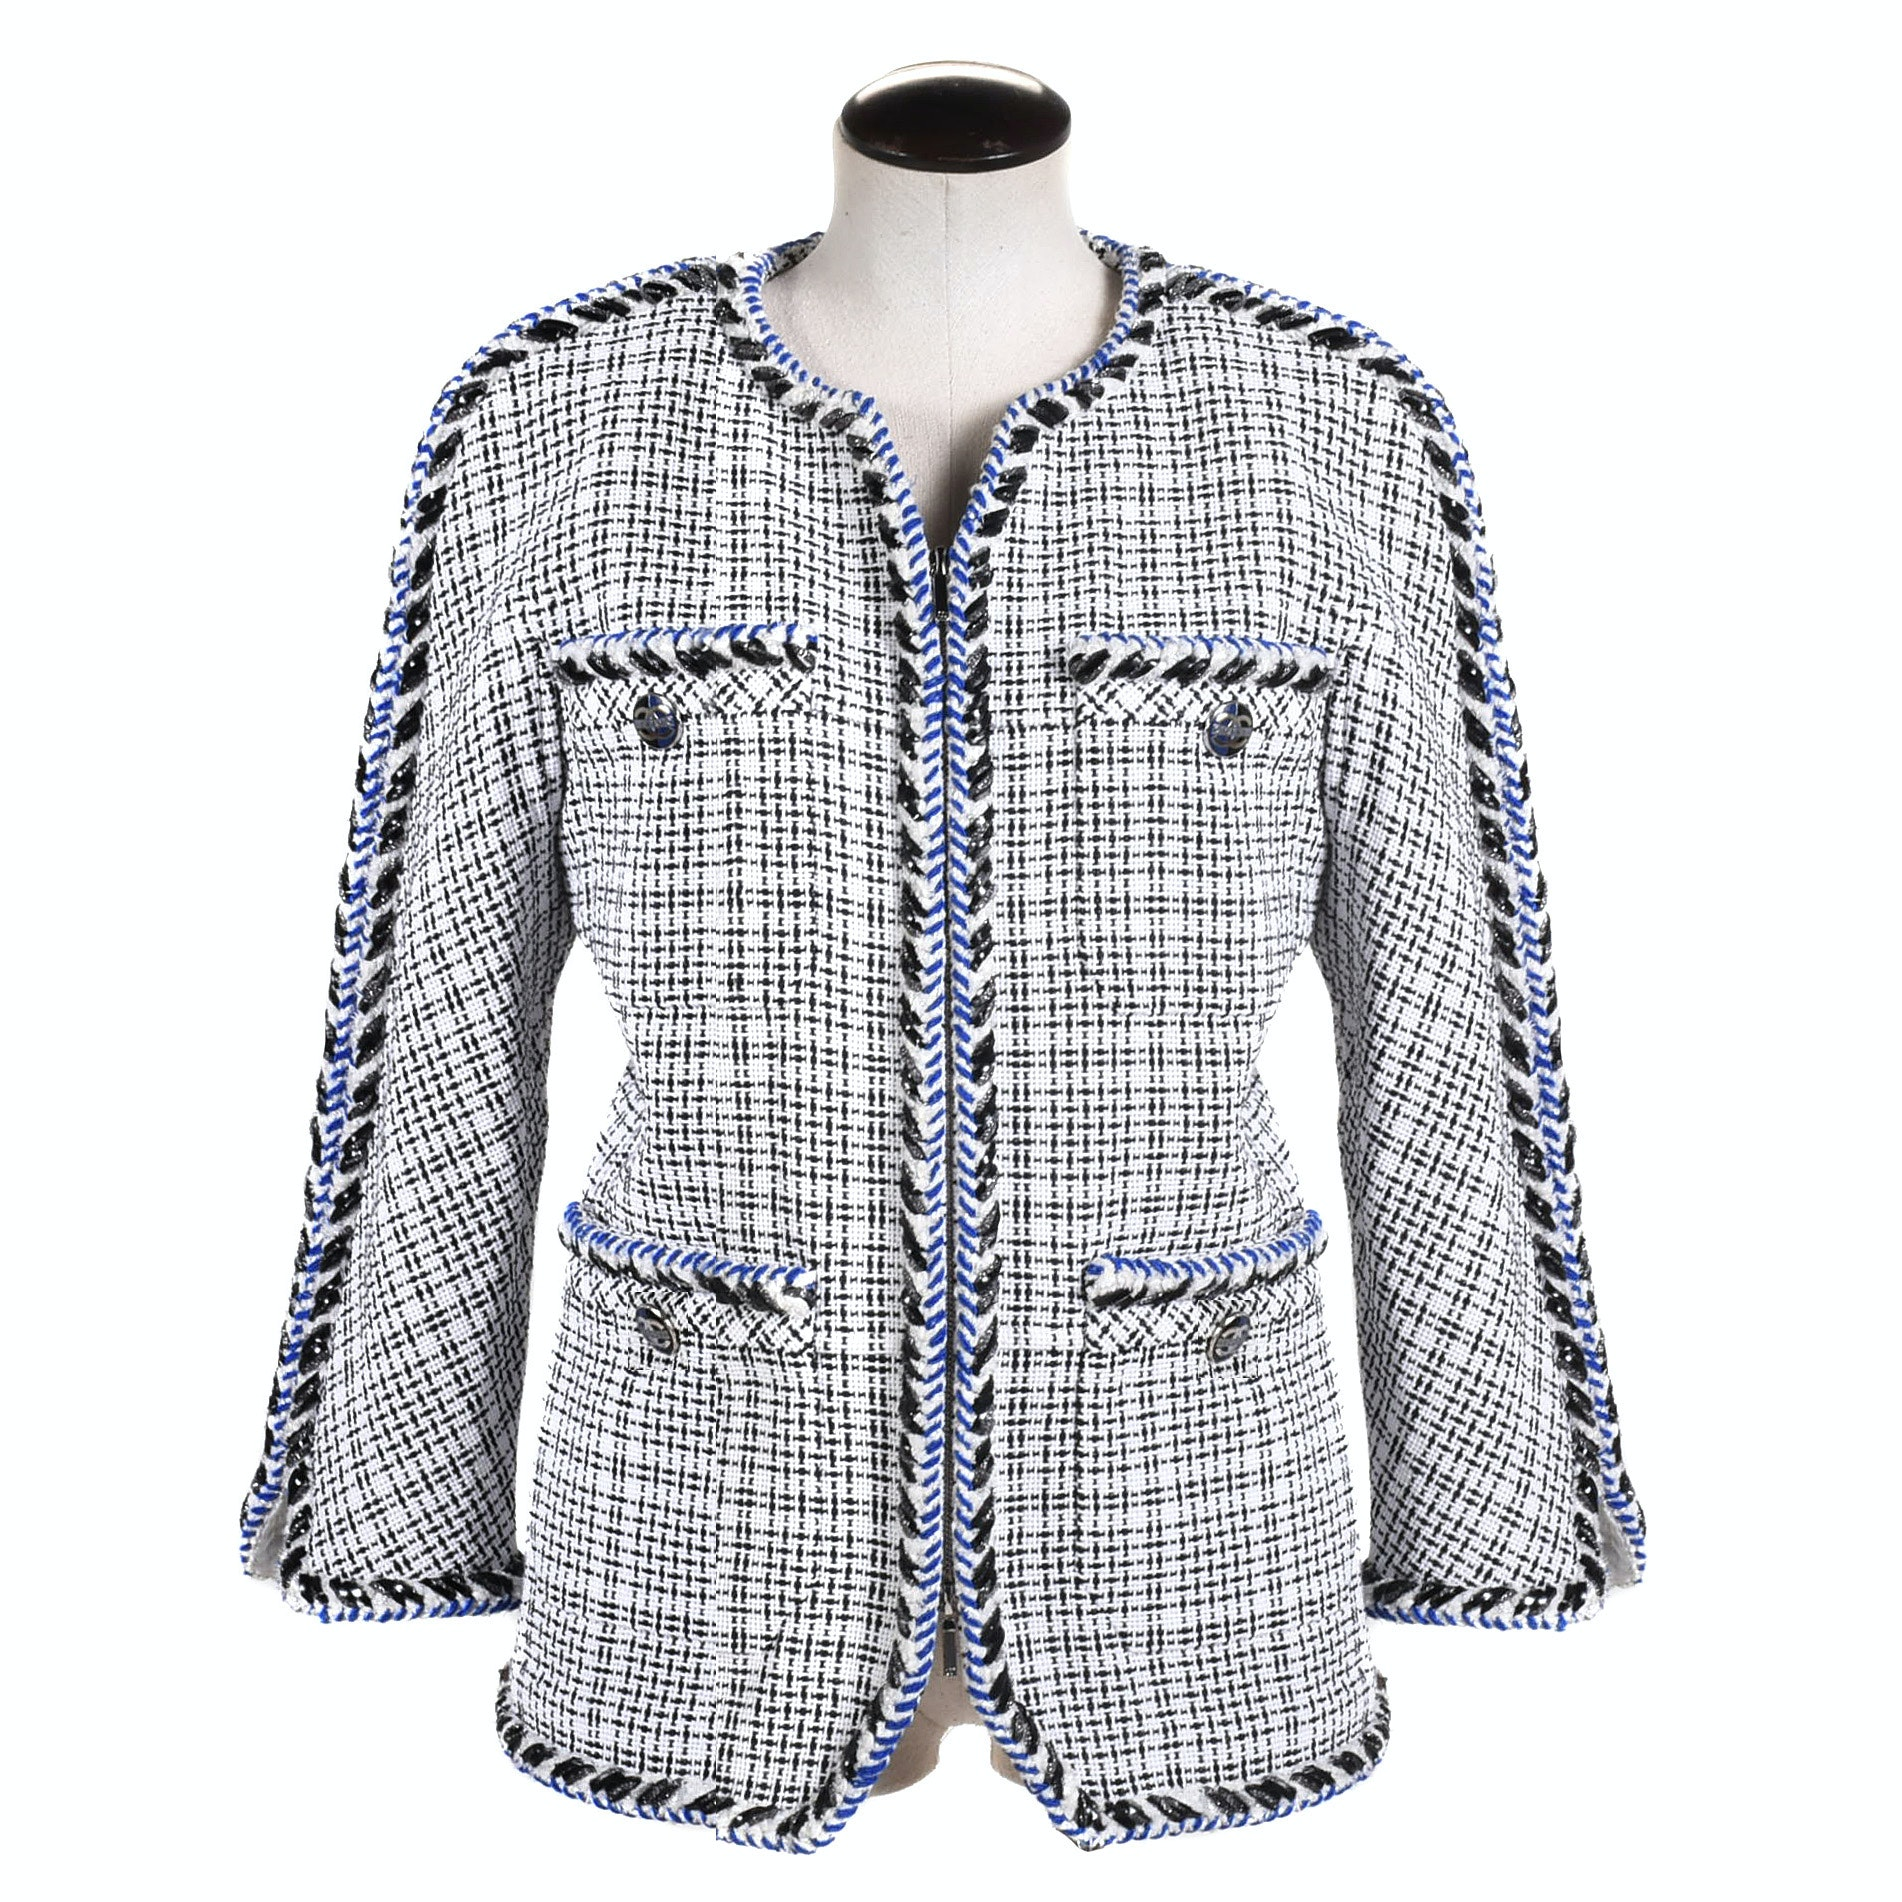 Women's Chanel Black and White Tweed Jacket with Blue Braided Trim